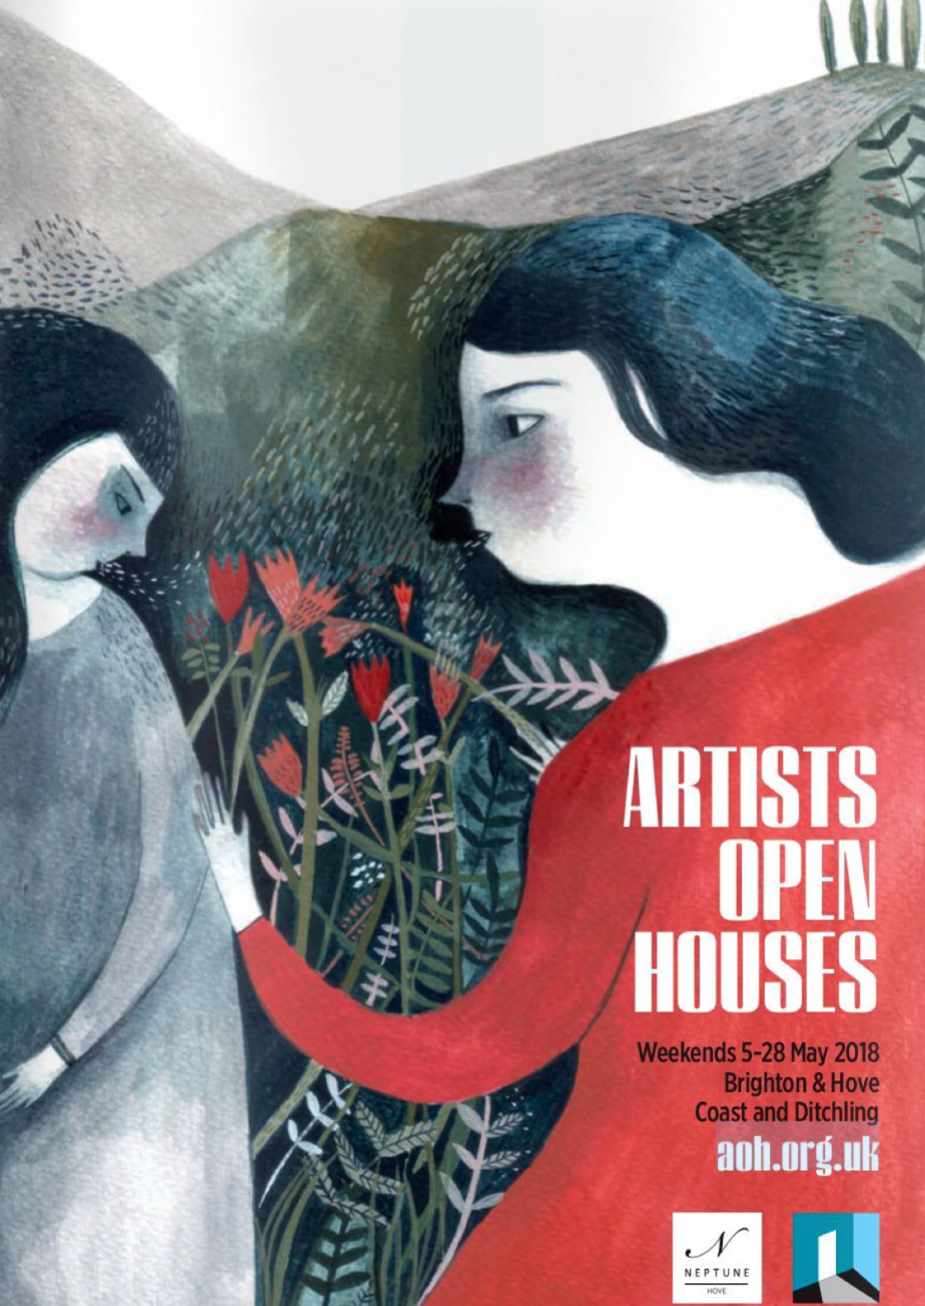 - Exhibition Dates: 5 - 28th May 2018 Artists Open Houses: This May over 200 artists' homes and studios are opening their doors to exhibit work from over 1,000 artists and makers in Brighton and Hove, reaching from Portslade to Kemptown, out to Rottingdean, Newhaven and the South Downs village of Ditchling.Plan your visit around the 13 individual trails shown on the AOH website, or take your pick from the wealth of Open Houses on offer.    https://aoh.org.ukhttps://www.brightonfringe.org